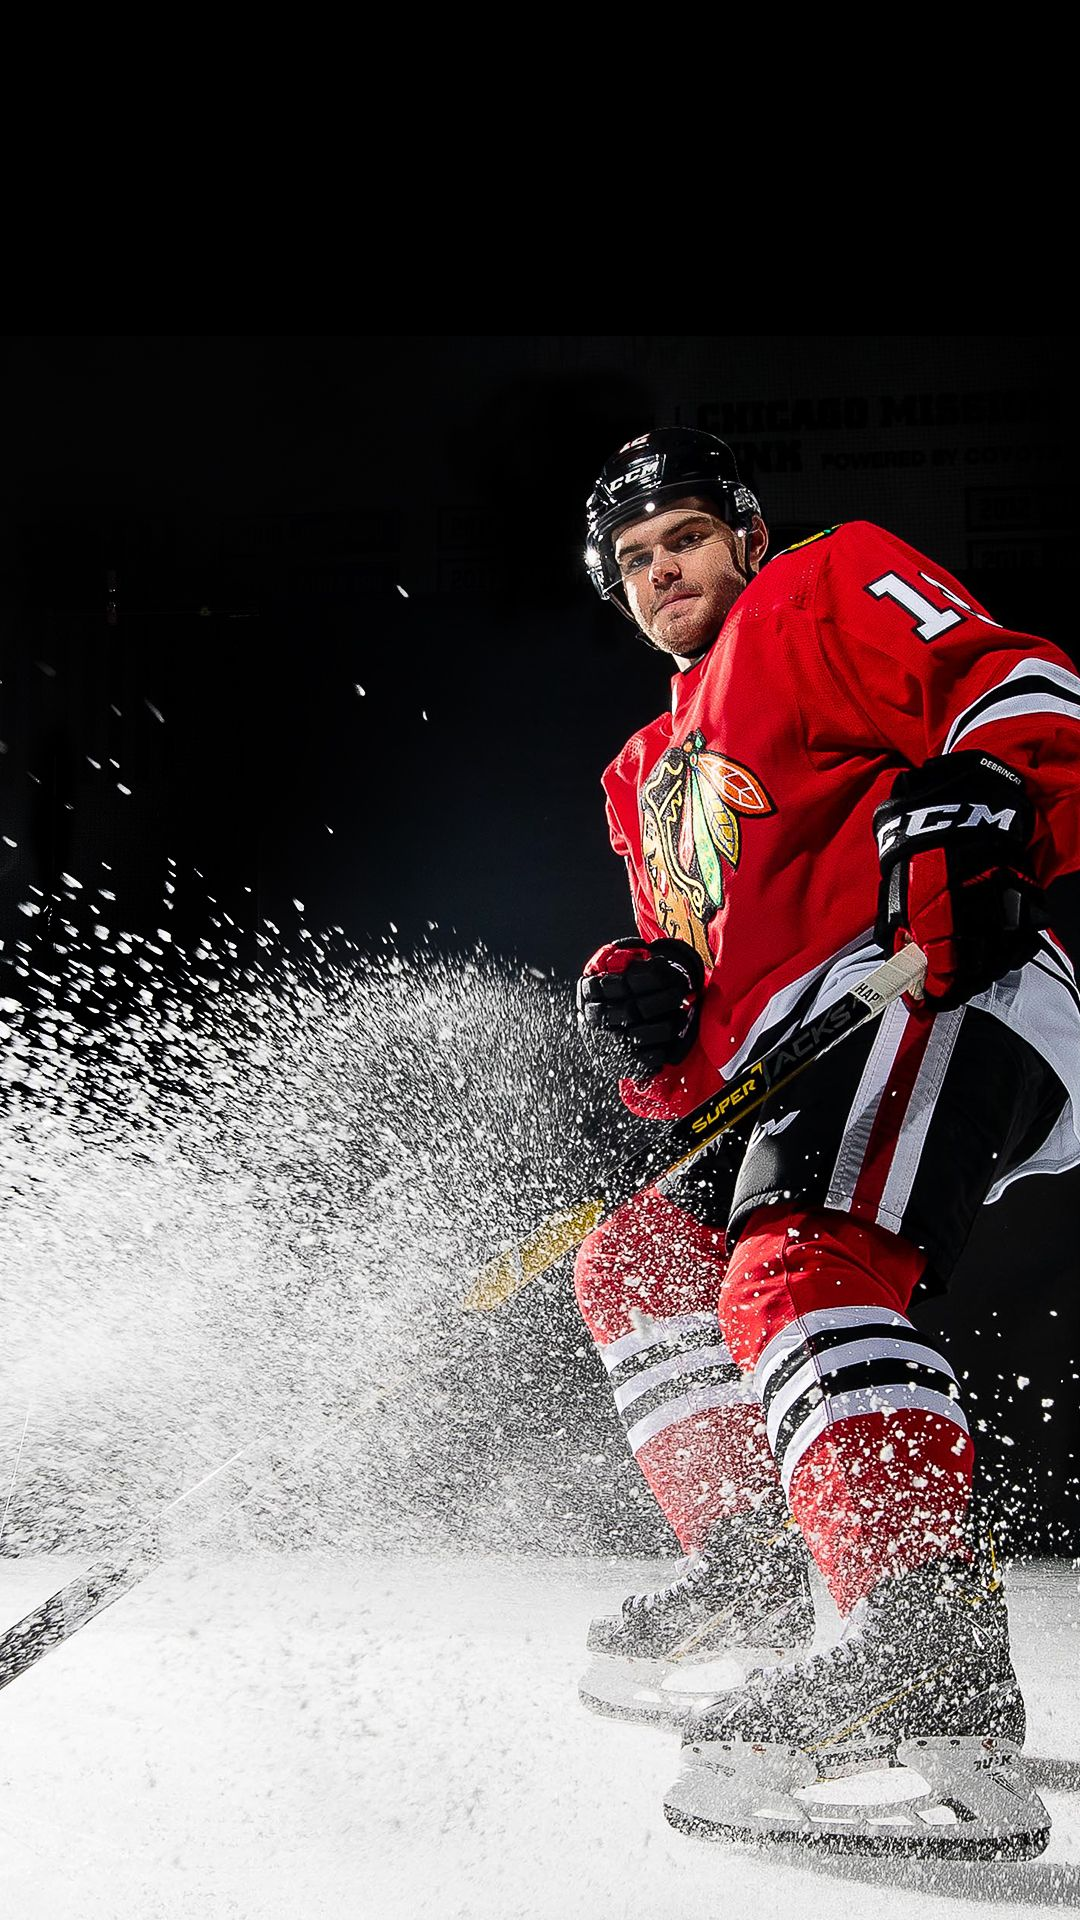 Blackhawks Wallpaper Android Download in 2020 Kane